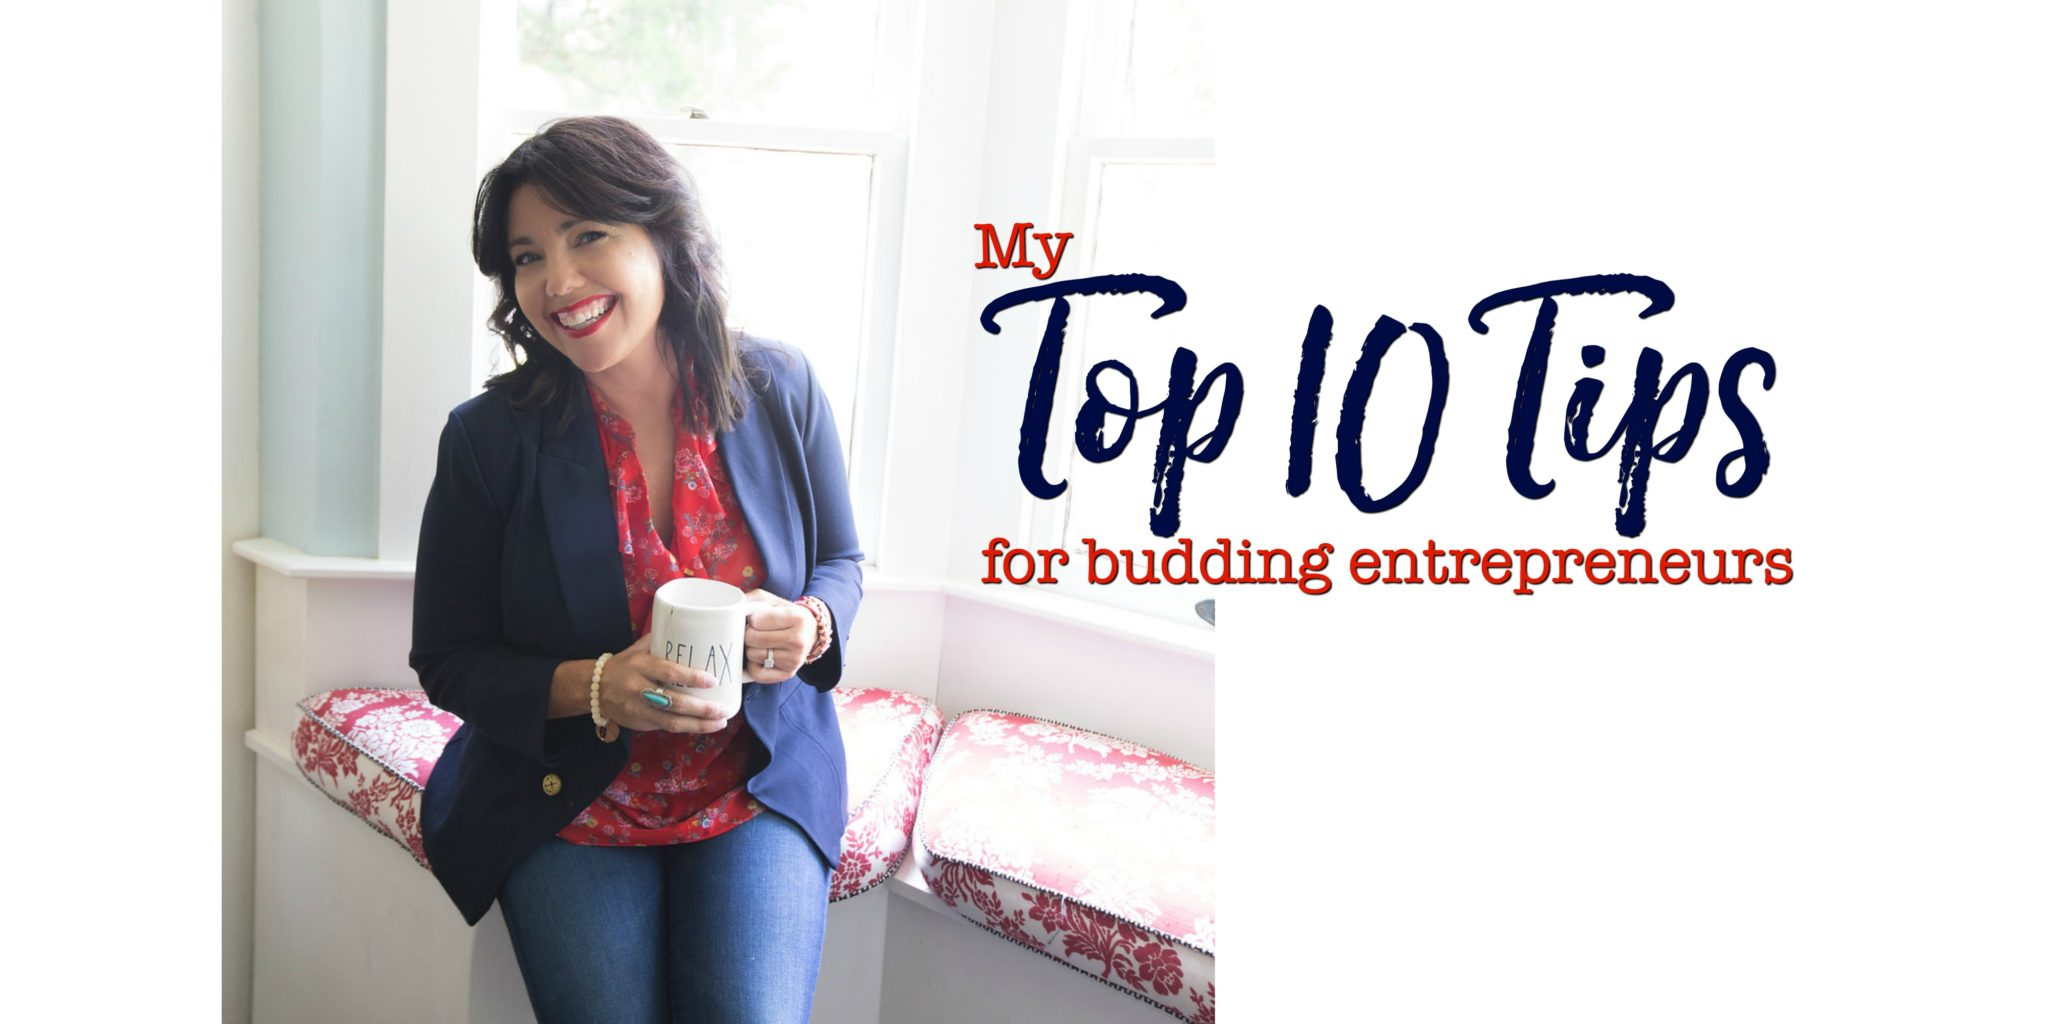 My Top 10 Tips for Budding Entrepreneurs